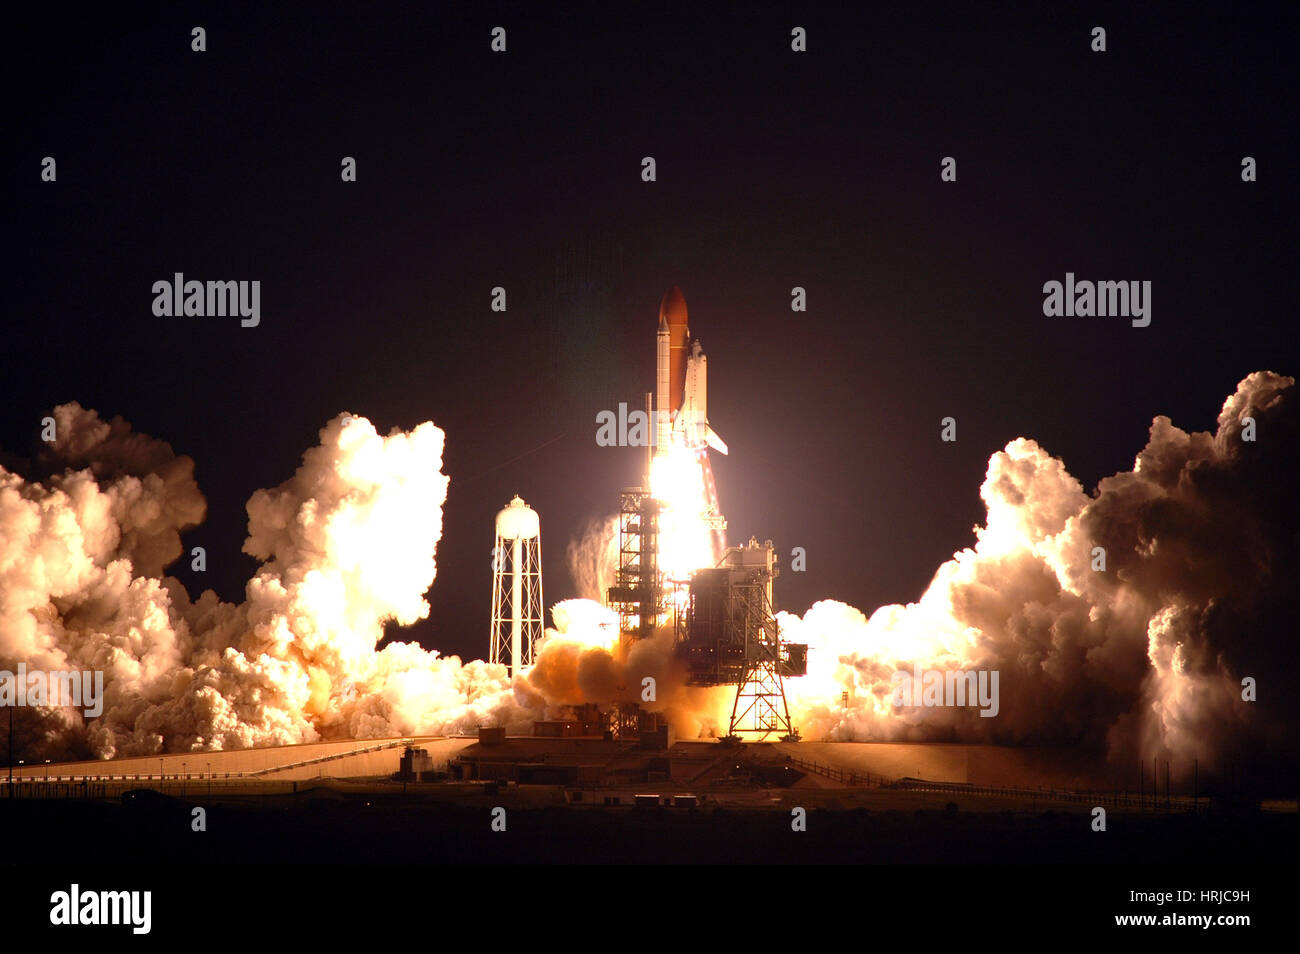 STS-123, Space Shuttle Endeavor Launch, 2008 - Stock Image